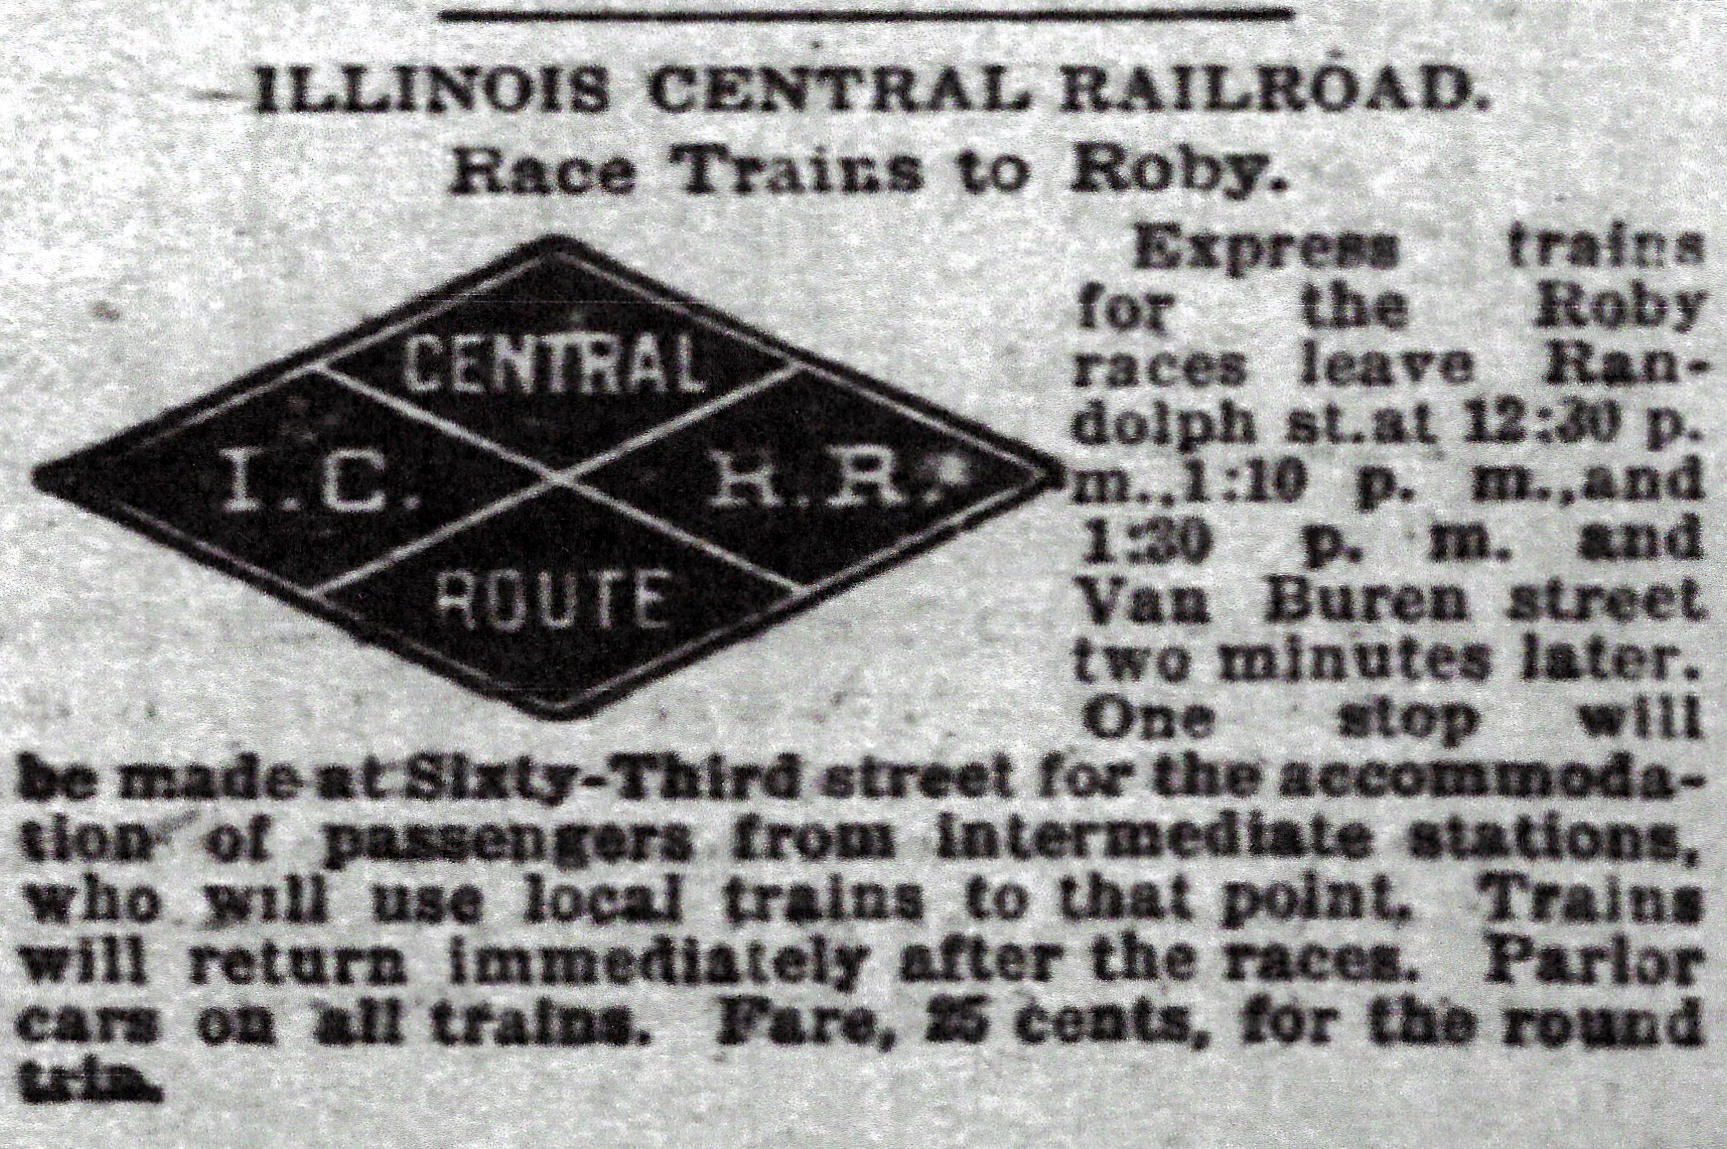 The railroads ran special trains to the Roby track, the fare was usually 25 cents, round-trip. Ads, such as this one from 1896, ran regularly in the Chicago newspapers. The trains were often full, with 1,500 people on-board from Chicago to Roby. On a handful of occasions, they didn't bother to stop along the way, because there was no more room for passengers. A platform was built along the rail tracks at Roby, which were just north of the race course, and a raised wooden sidewalk led from that platform to the gate of the race track.